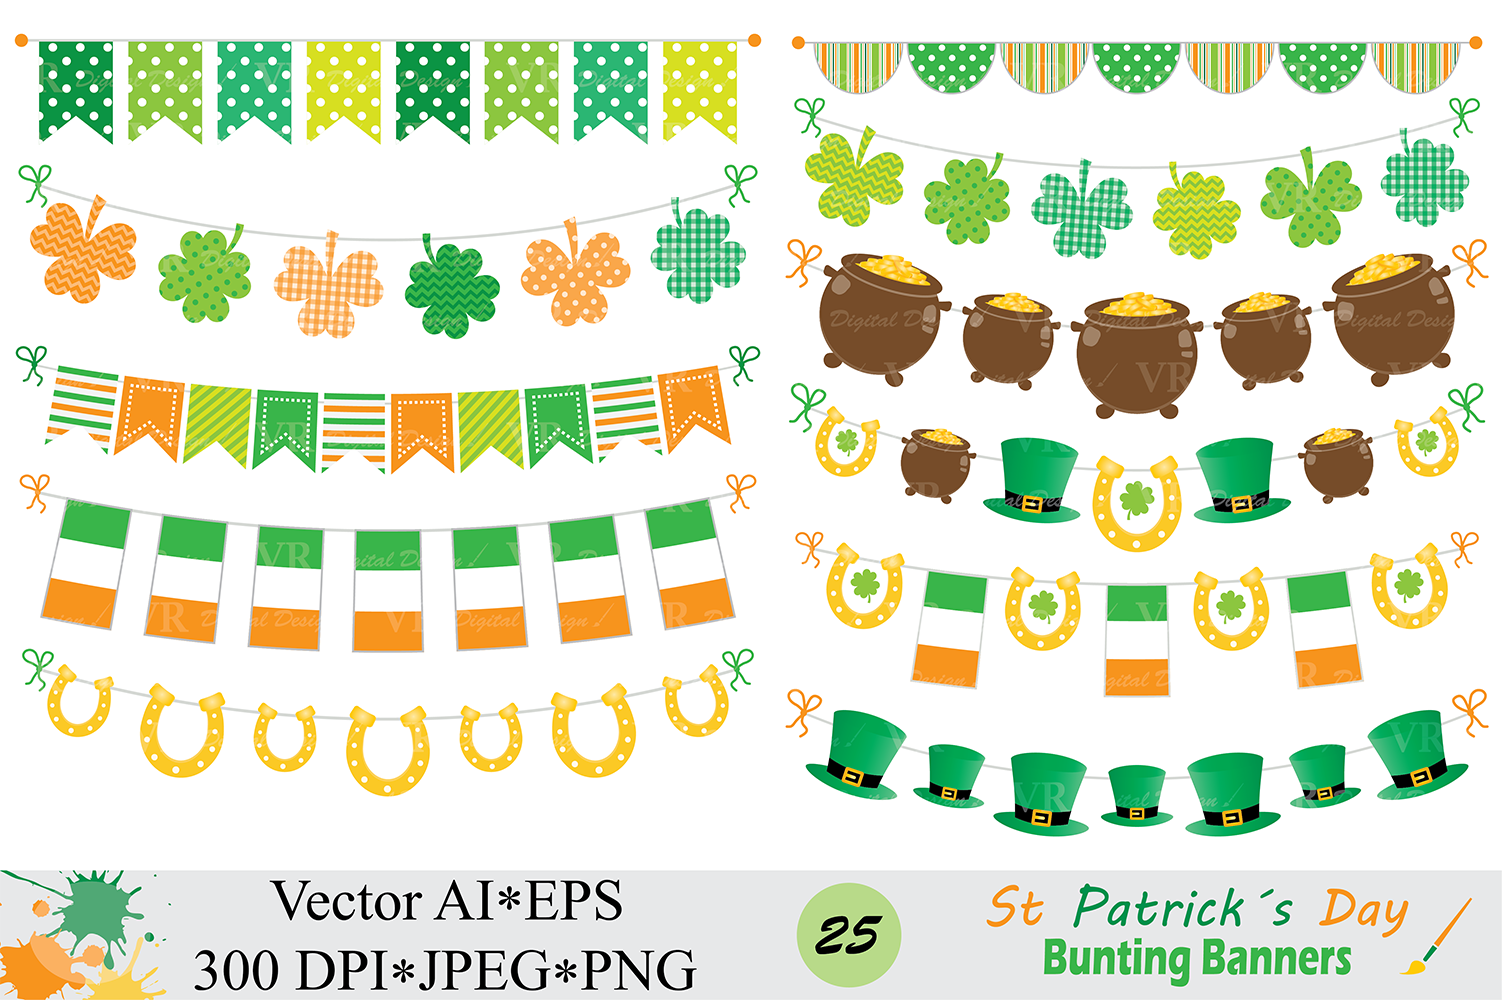 St Patrick`s Day Bunting Banner Clipart / Irish Orange and Green Bunting Vector Clip Art example image 1